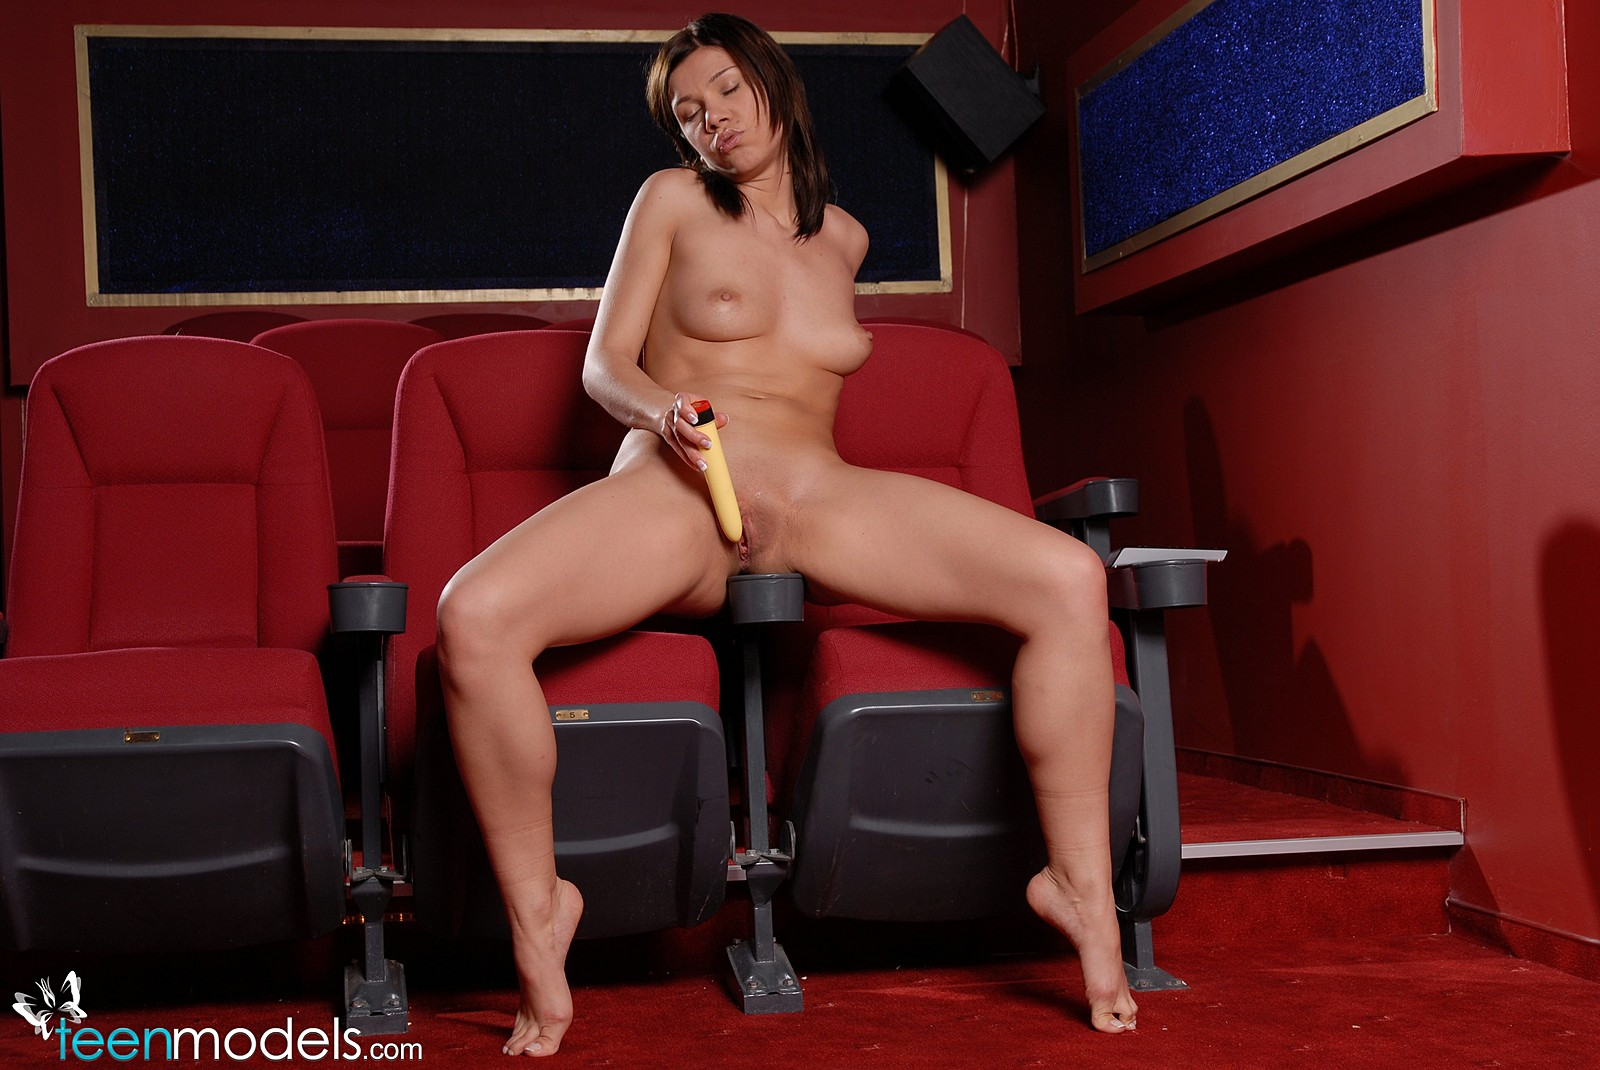 Girl masturbating in movie theater